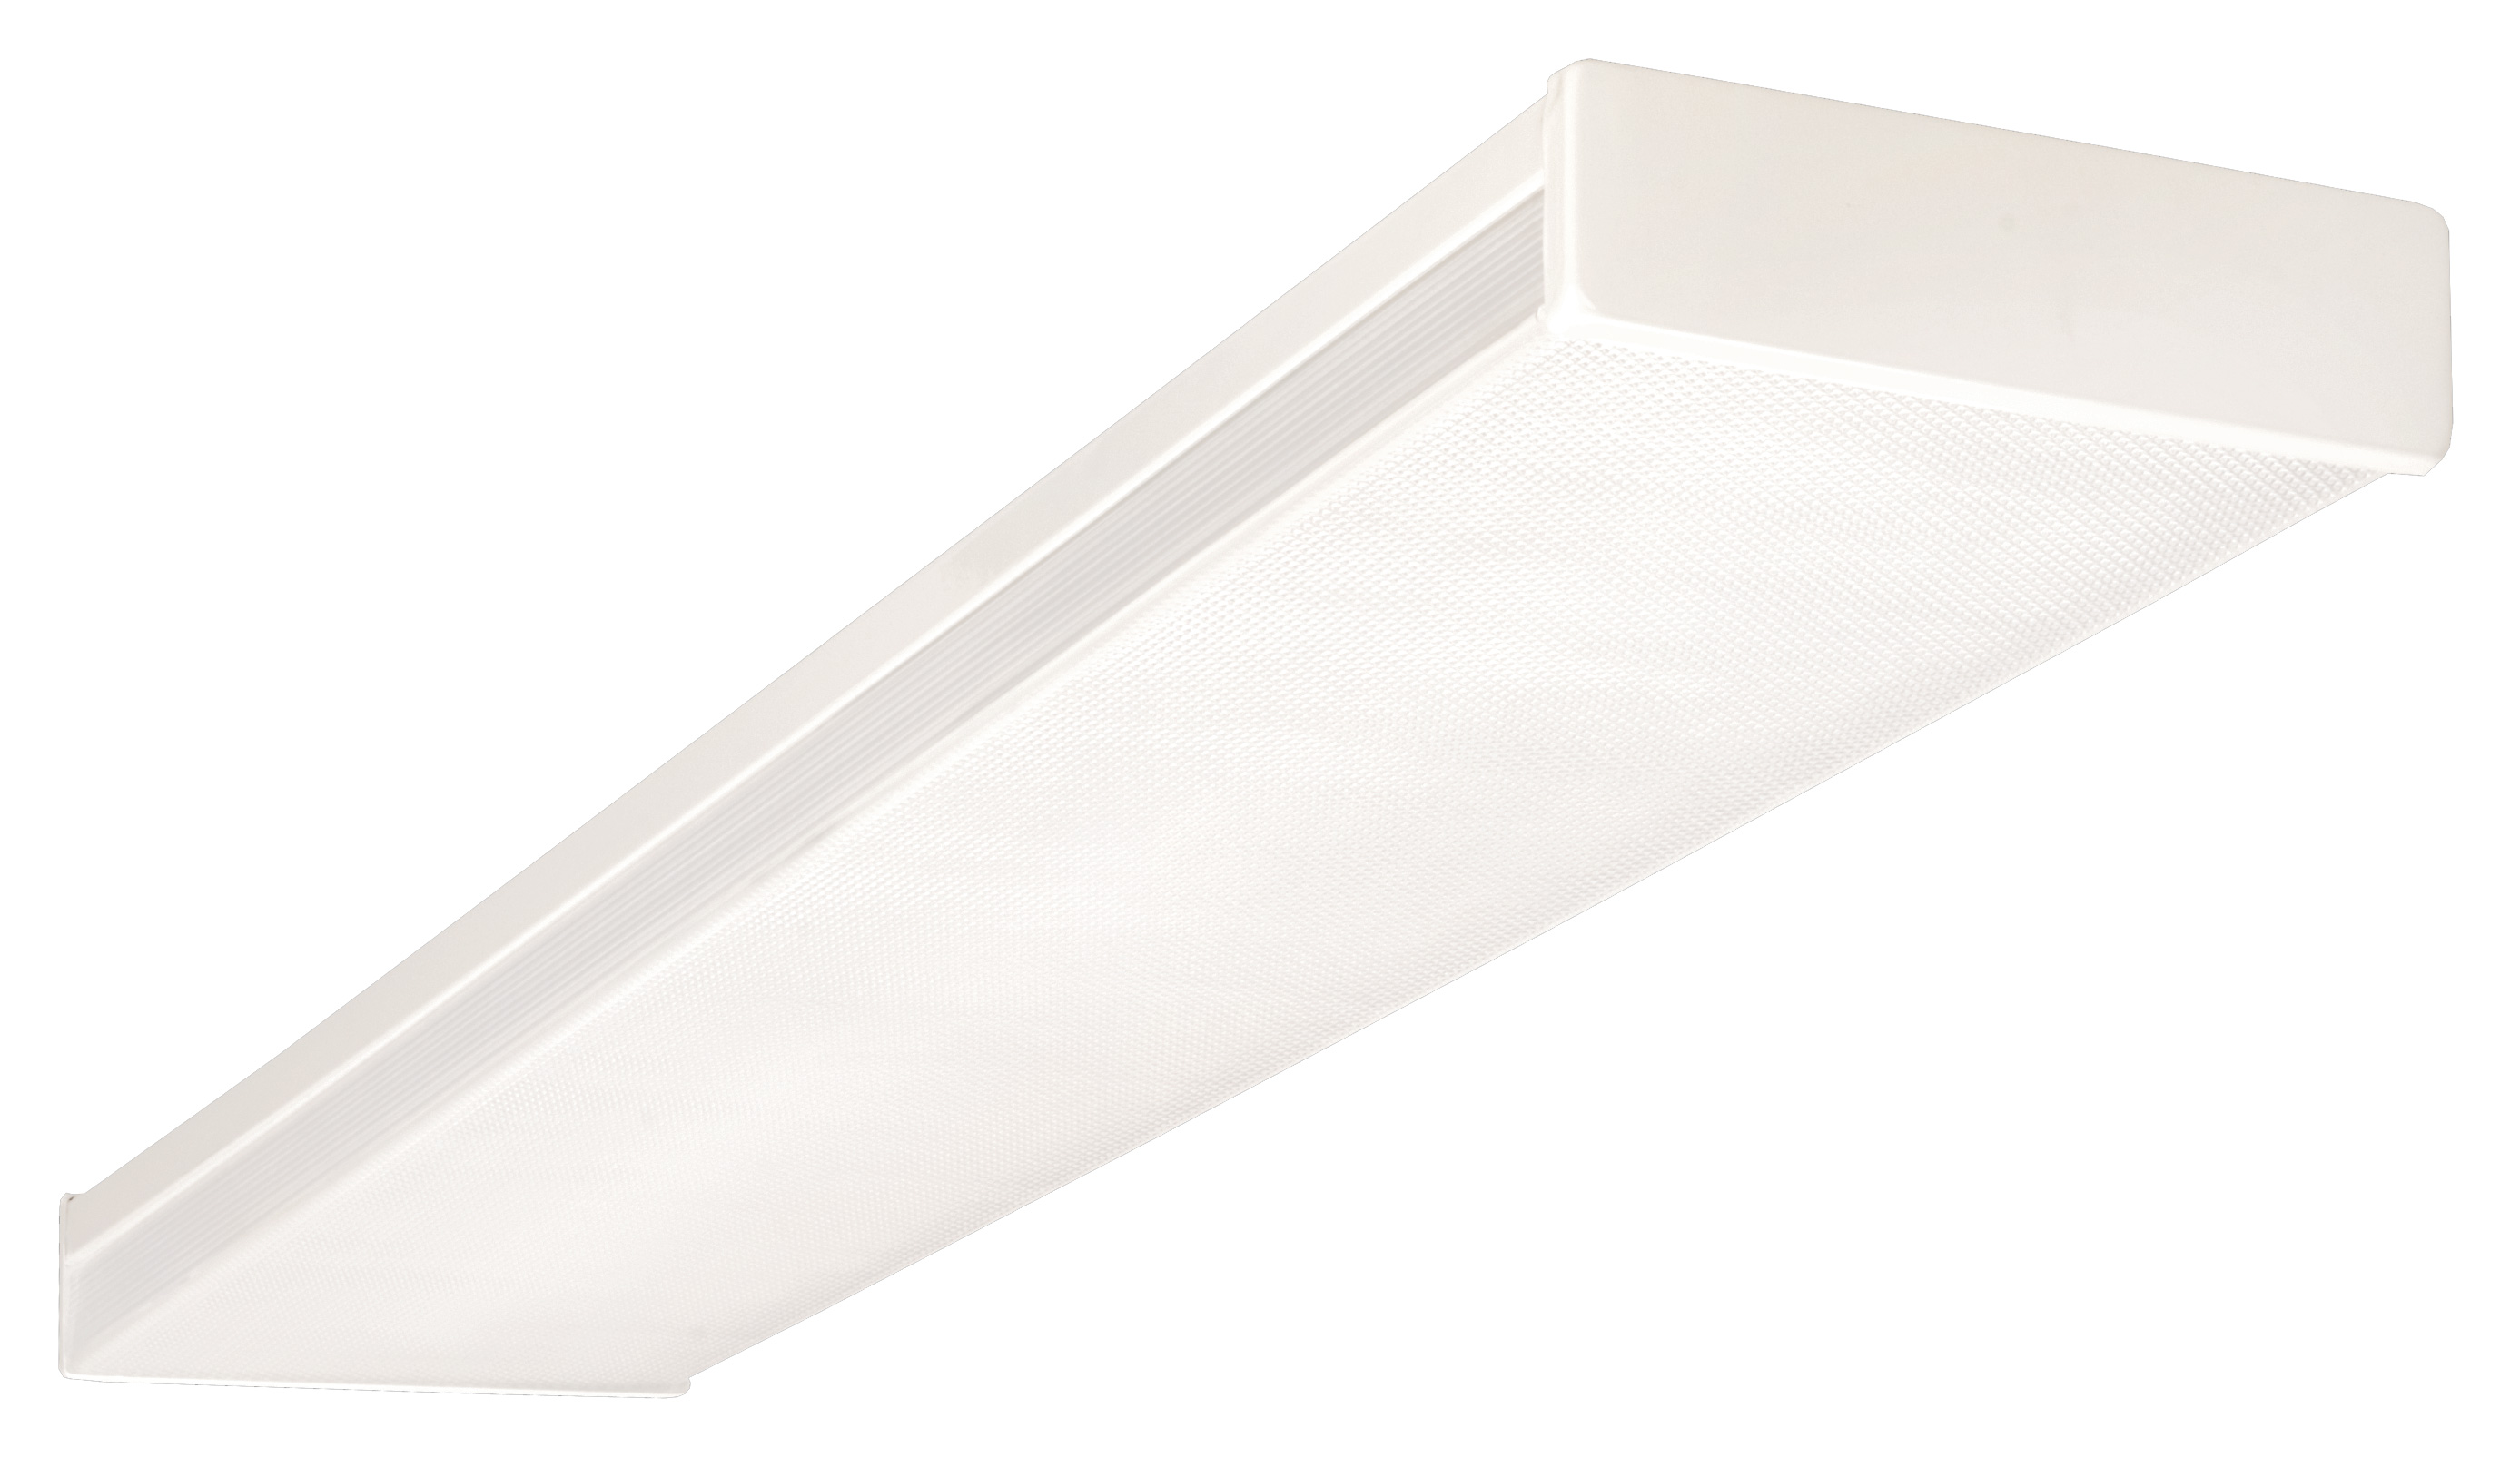 NICOR Lighting 4 Ft. Standard Dual Lamp 32W T8 Fluorescent Wraparound  Ceiling Fixture With